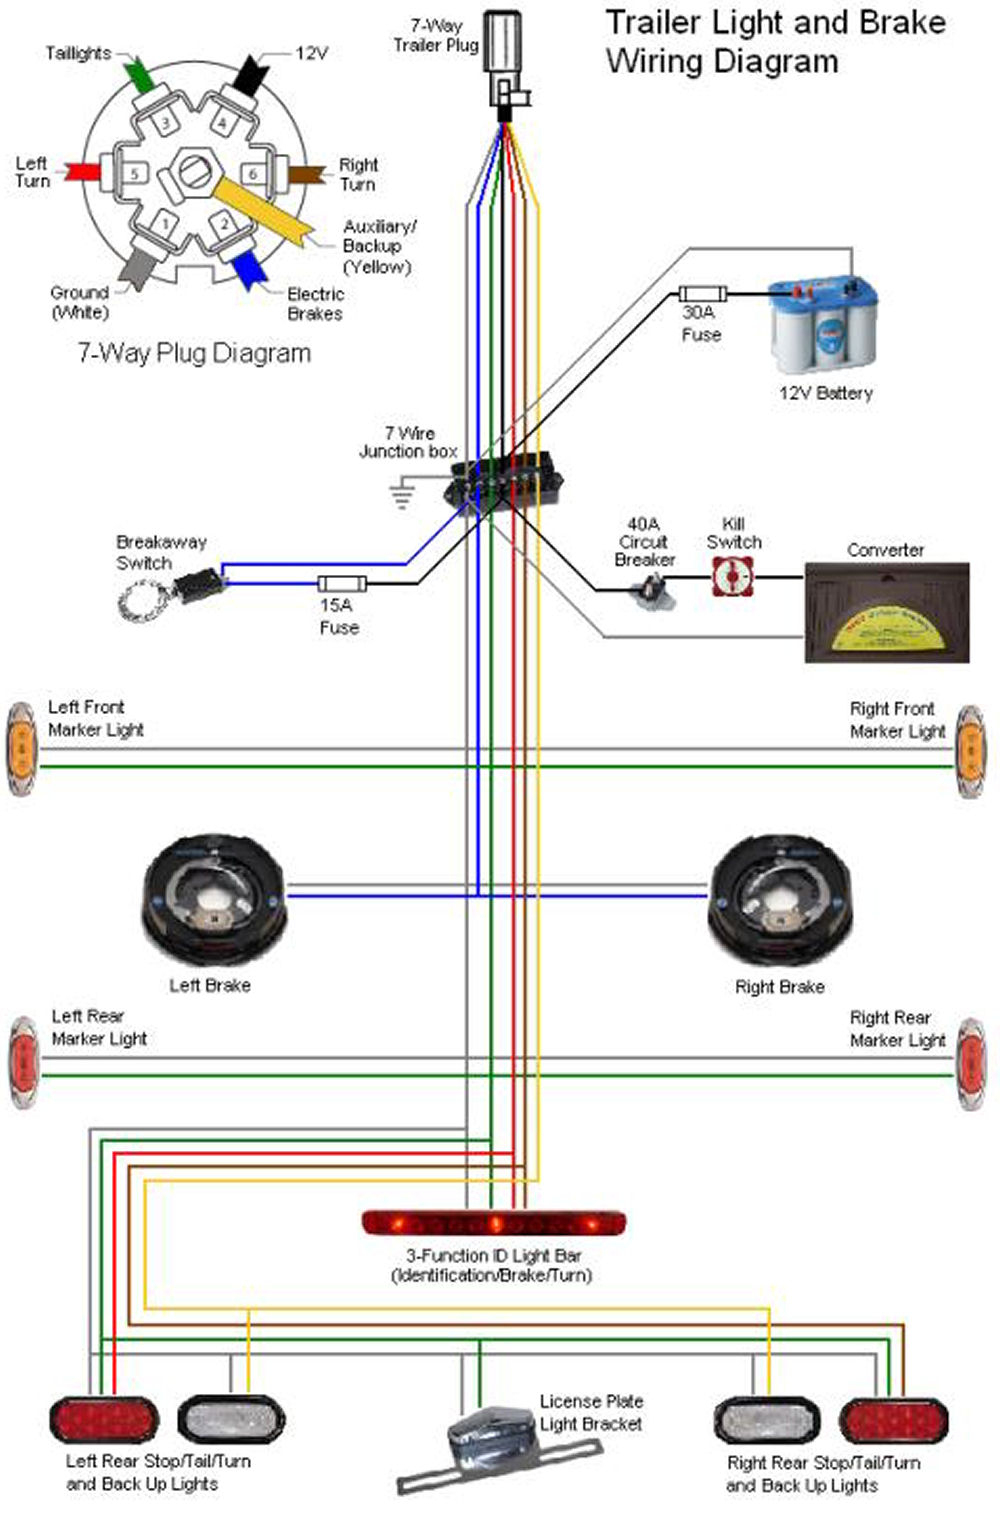 Magnificent Wiring Diagram For 7 Point Trailer Hitch Wiring Diagram Wiring Digital Resources Indicompassionincorg